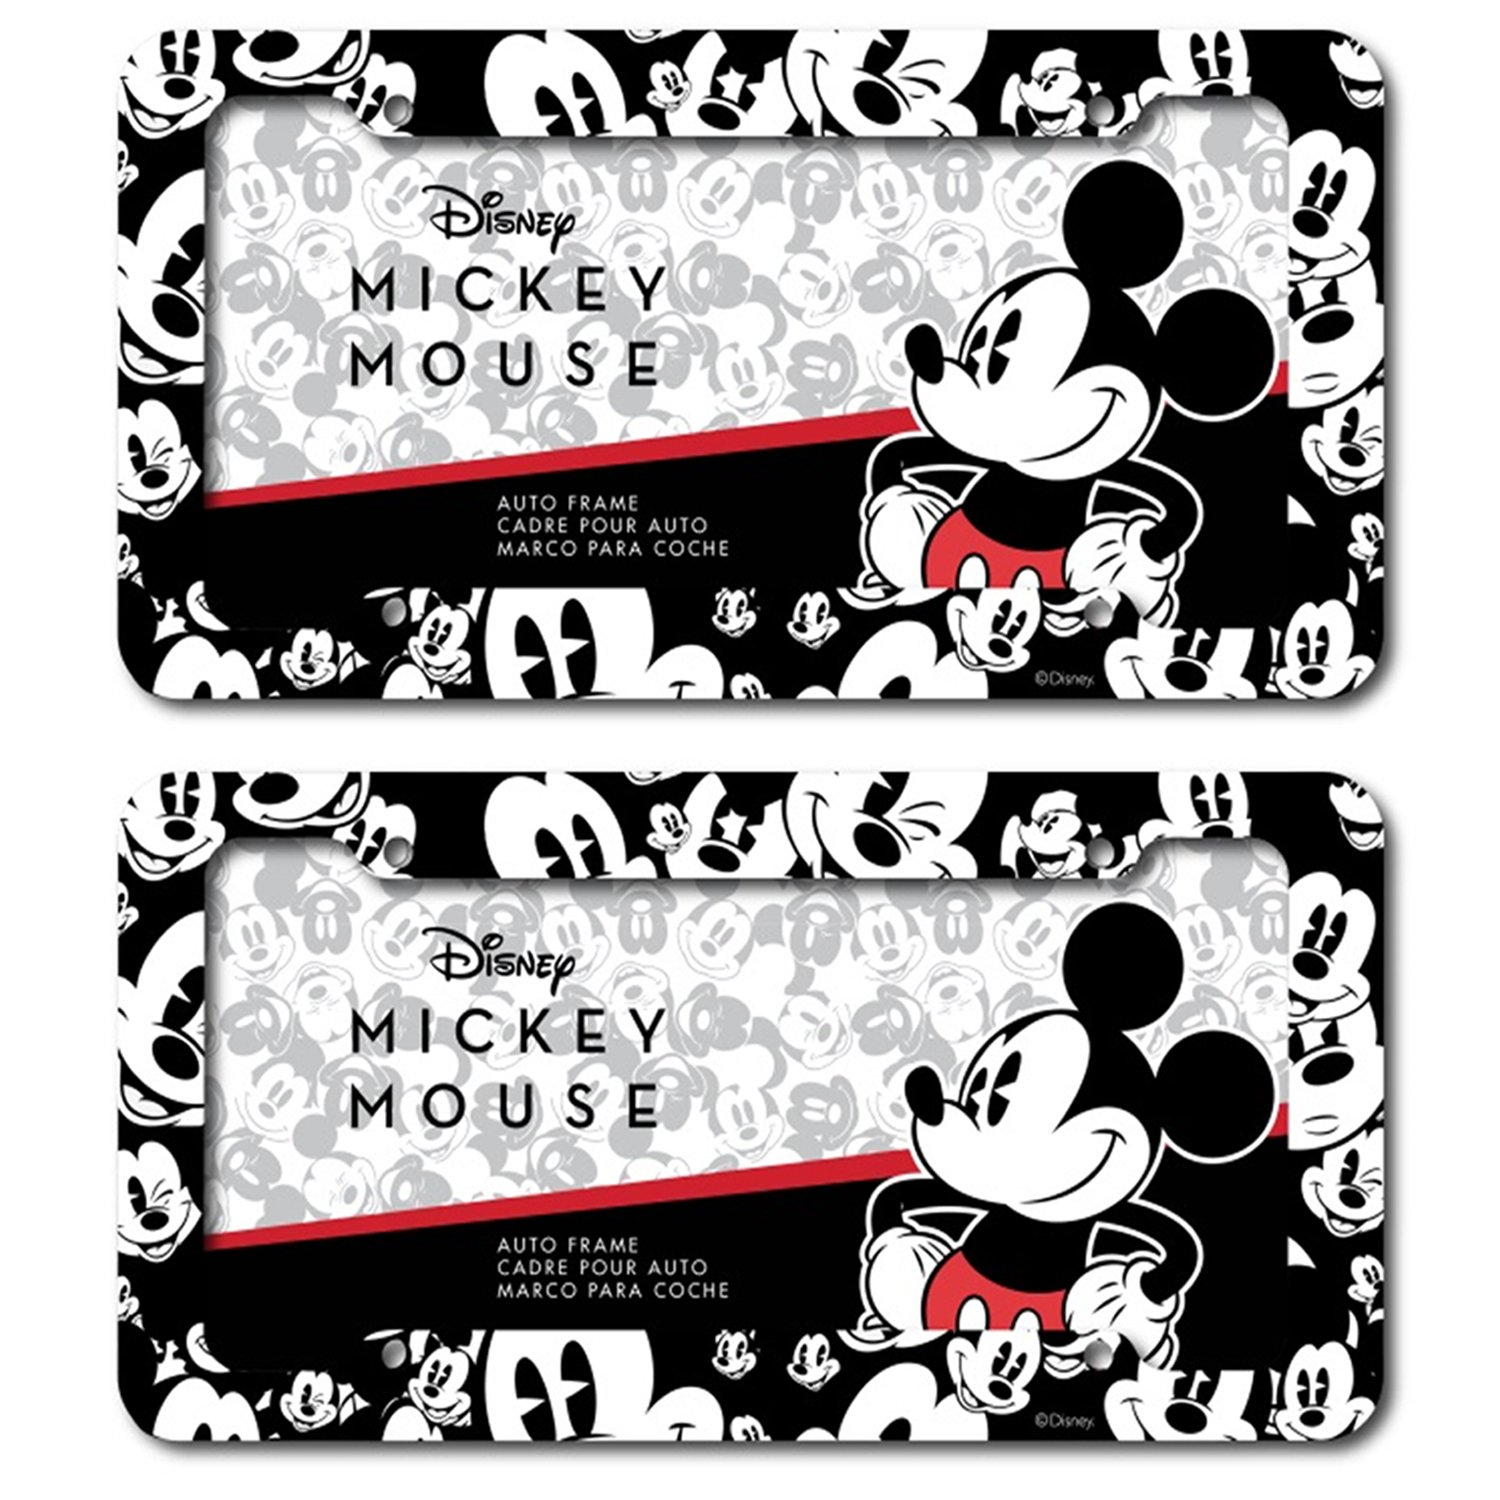 Amazon.com: Chroma Graphics Disney Mickey Mouse Expressions Emotions ...